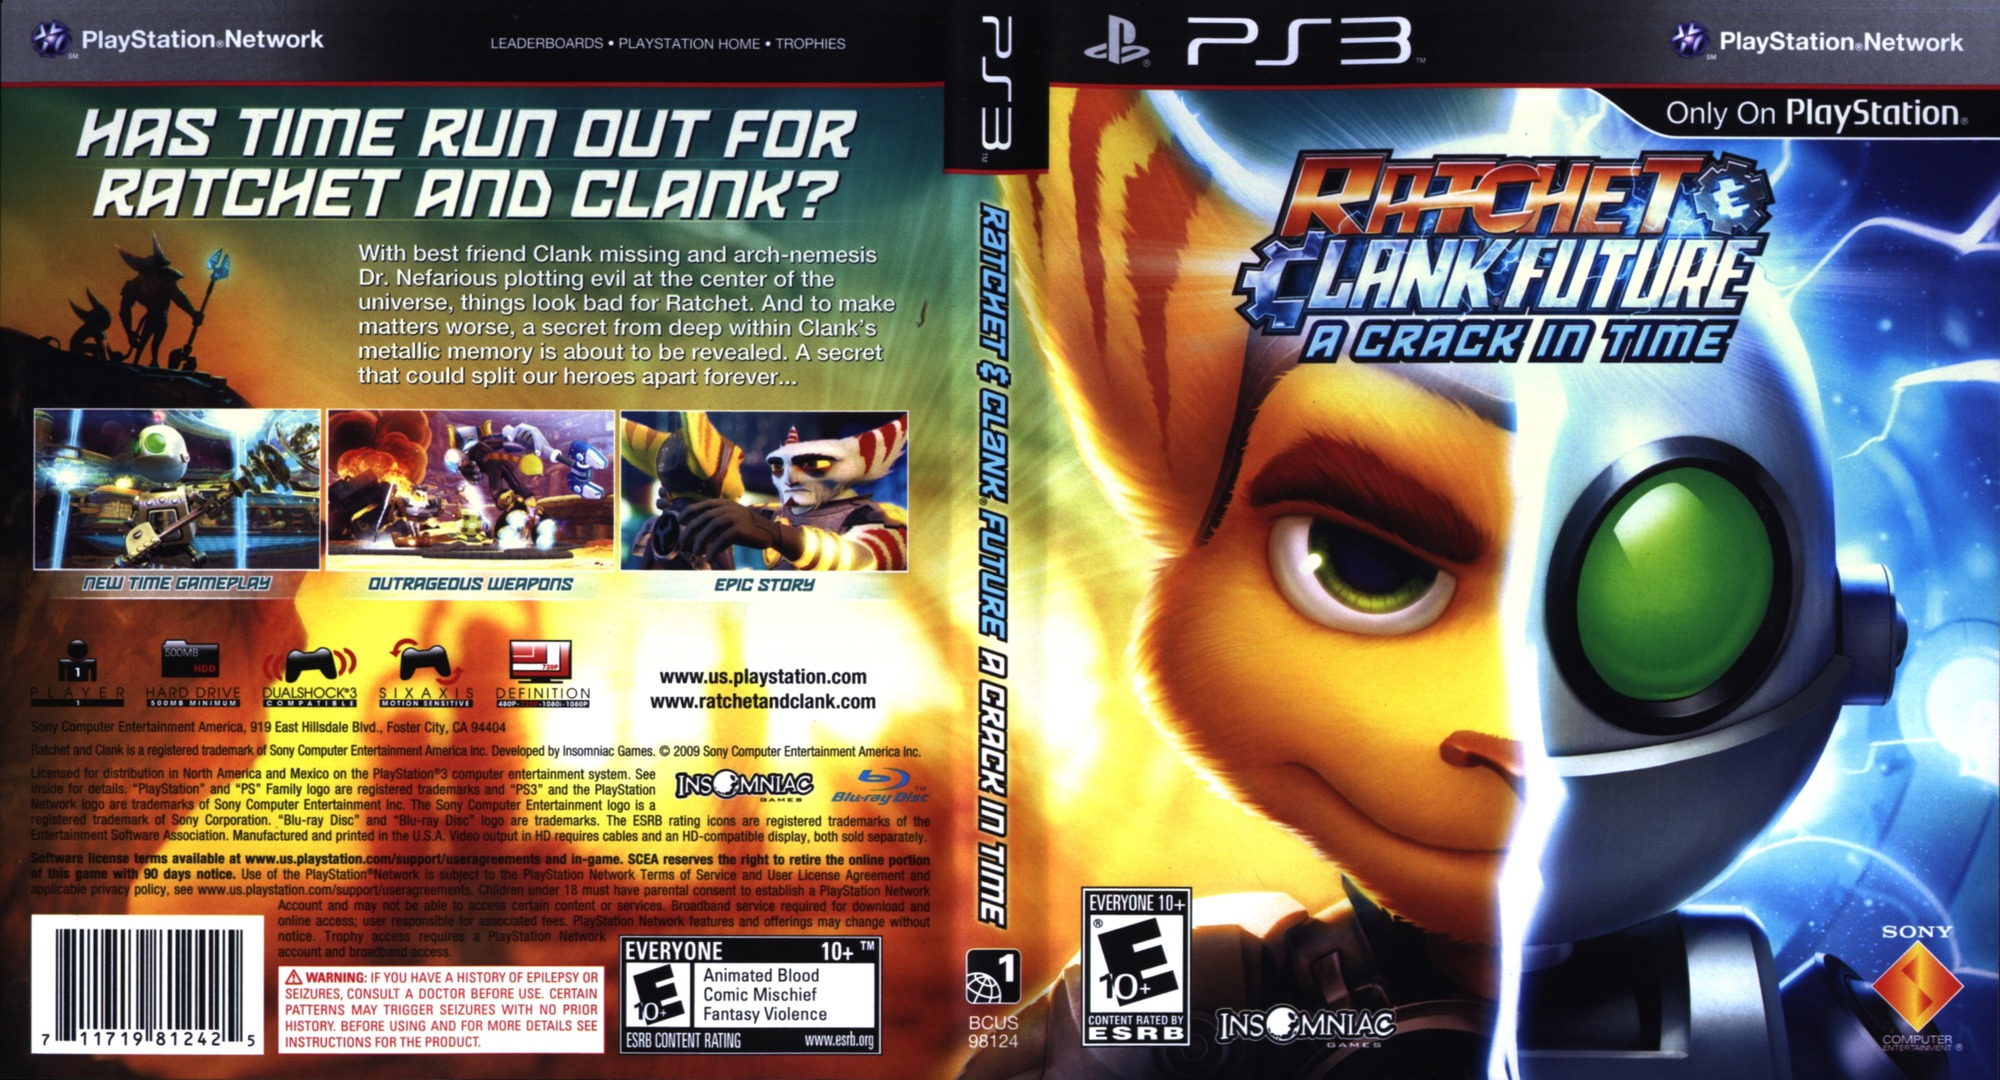 Ratchet & Clank: Future - A Crack in Time PS3 coverfullHQ (BCUS98124)